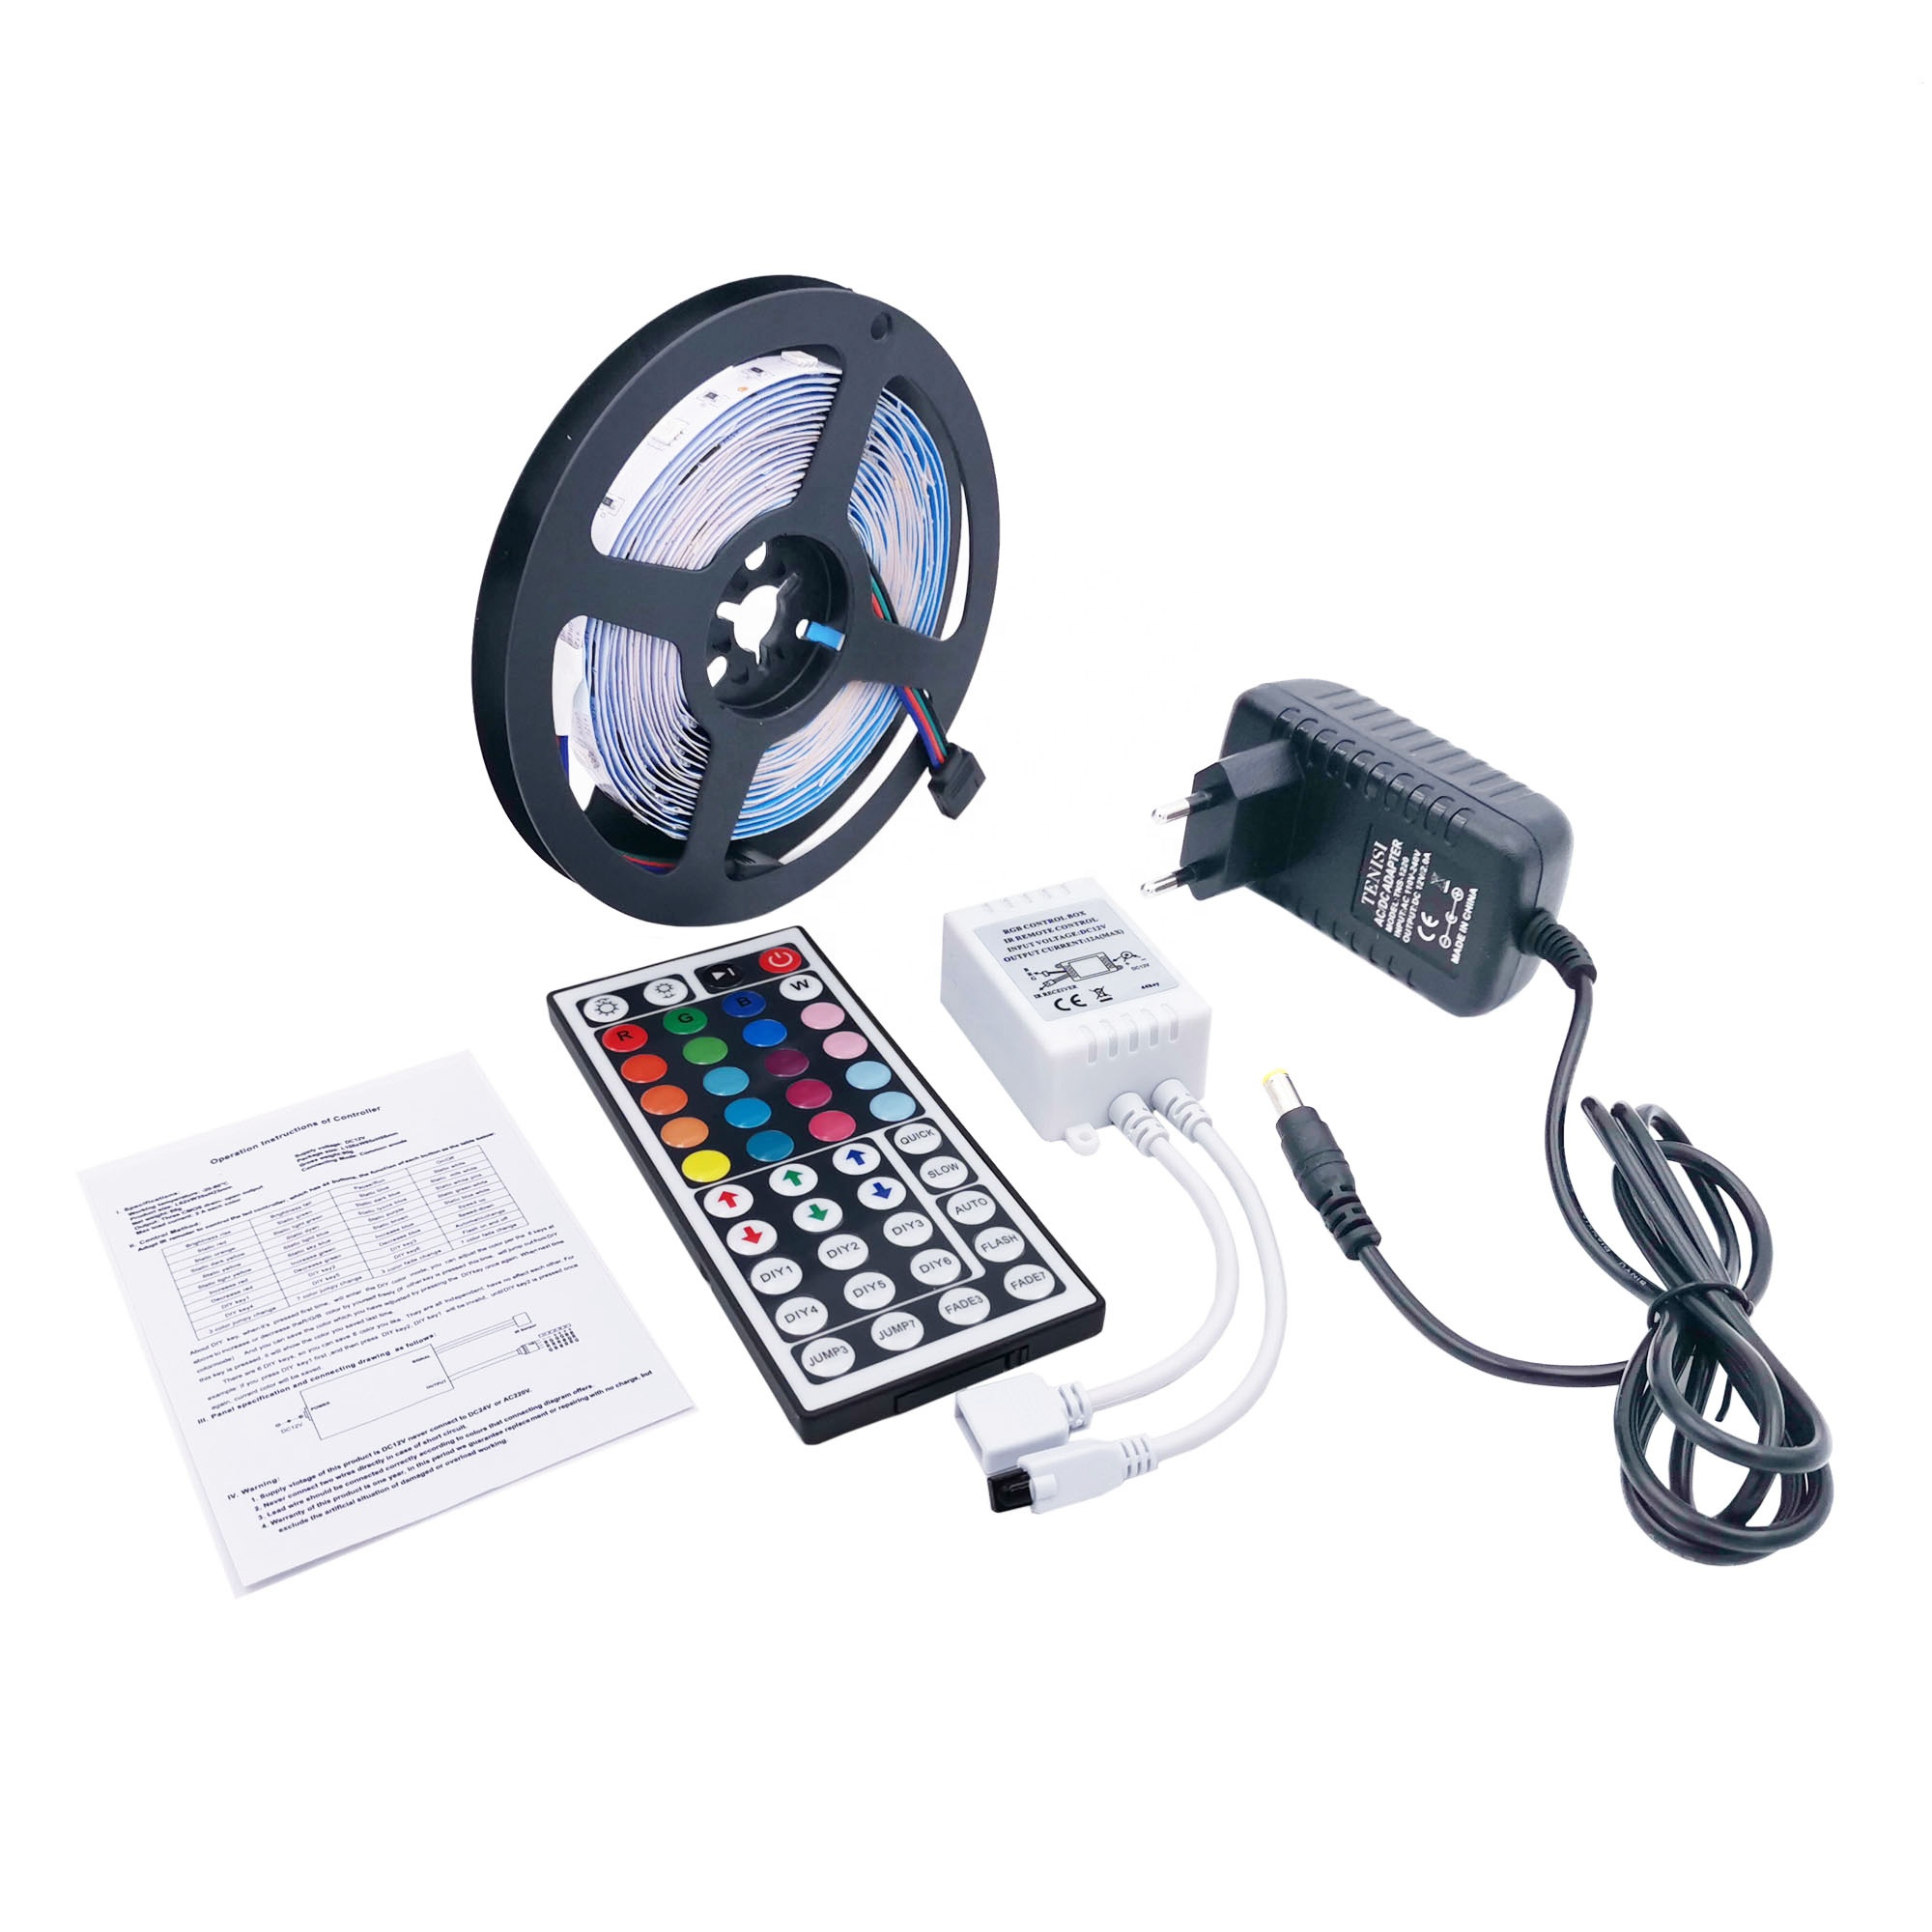 150leds 10mm PCB SMD 5050 led strip <strong>rgb</strong> 5m waterproof LED strip light